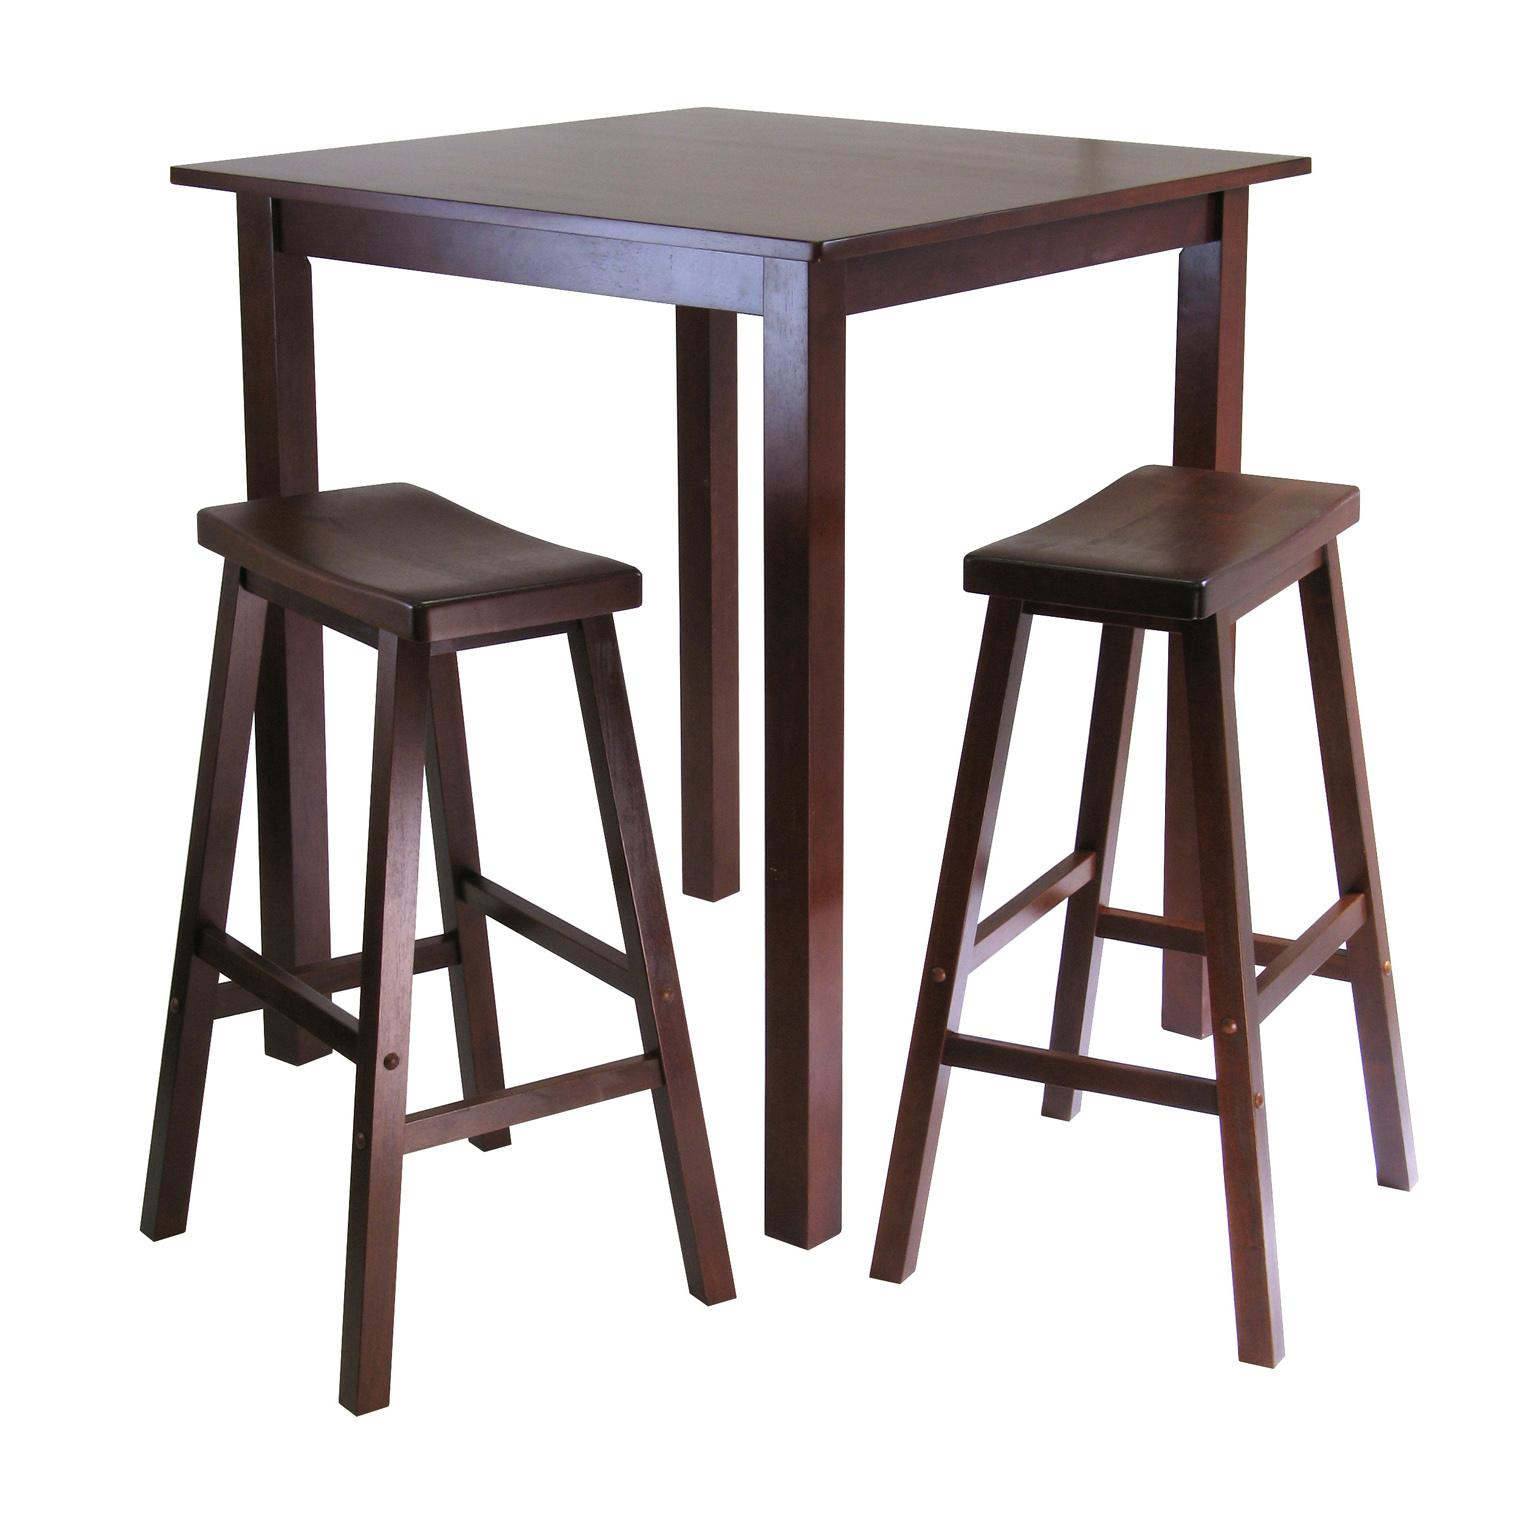 View larger  sc 1 st  Amazon.com & Amazon.com: Winsomeu0027s Parkland 3-Piece Square High/Pub Table Set in ...